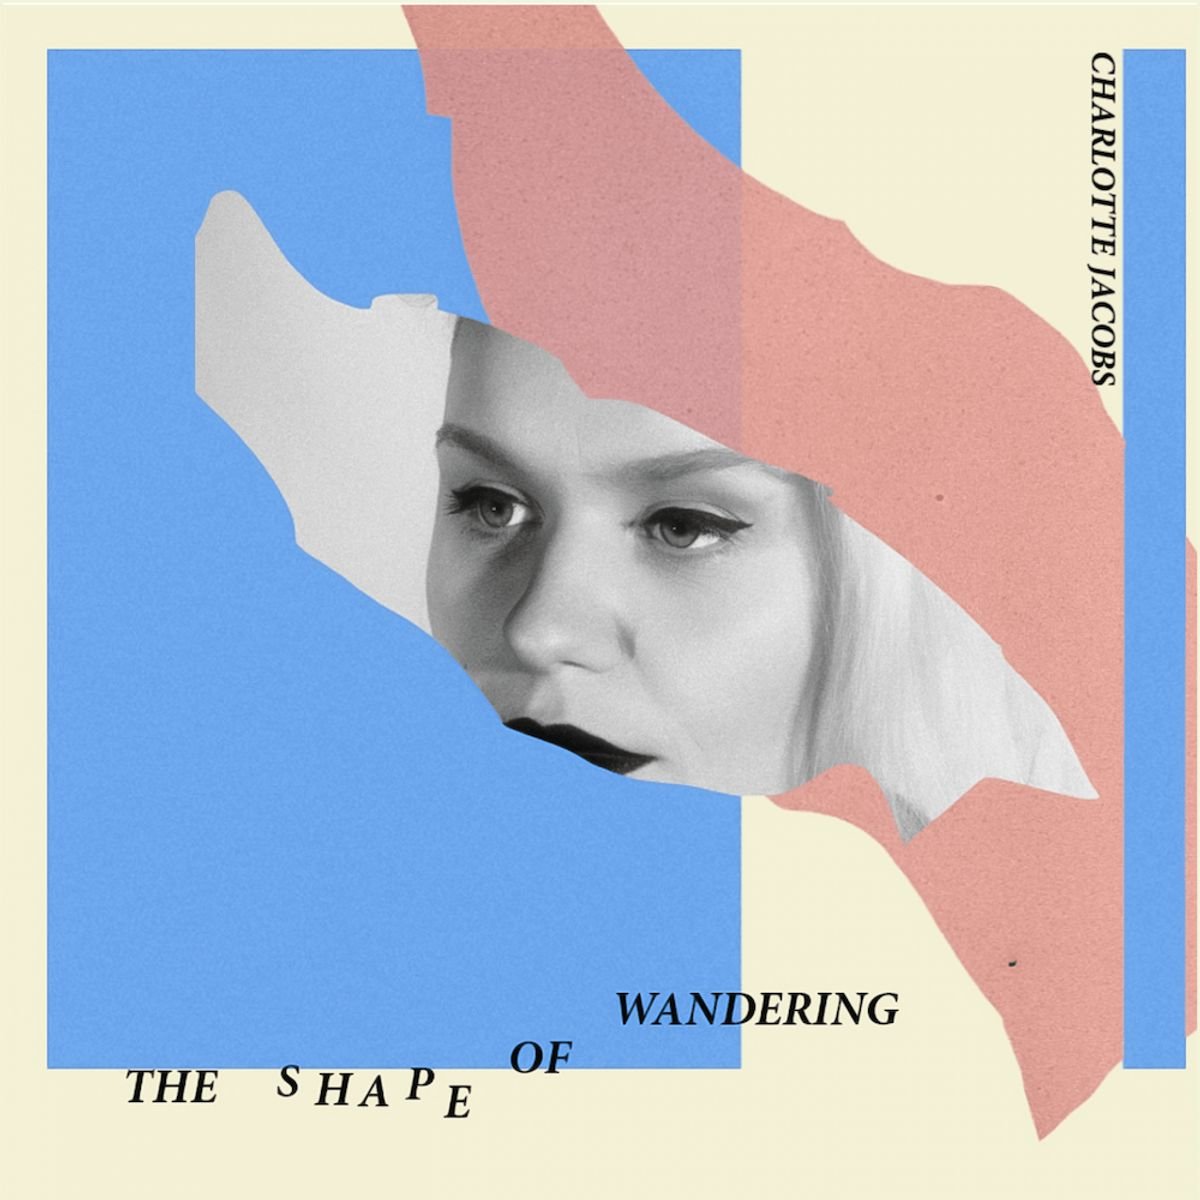 Charlotte Jacobs - The Shape Of Wandering